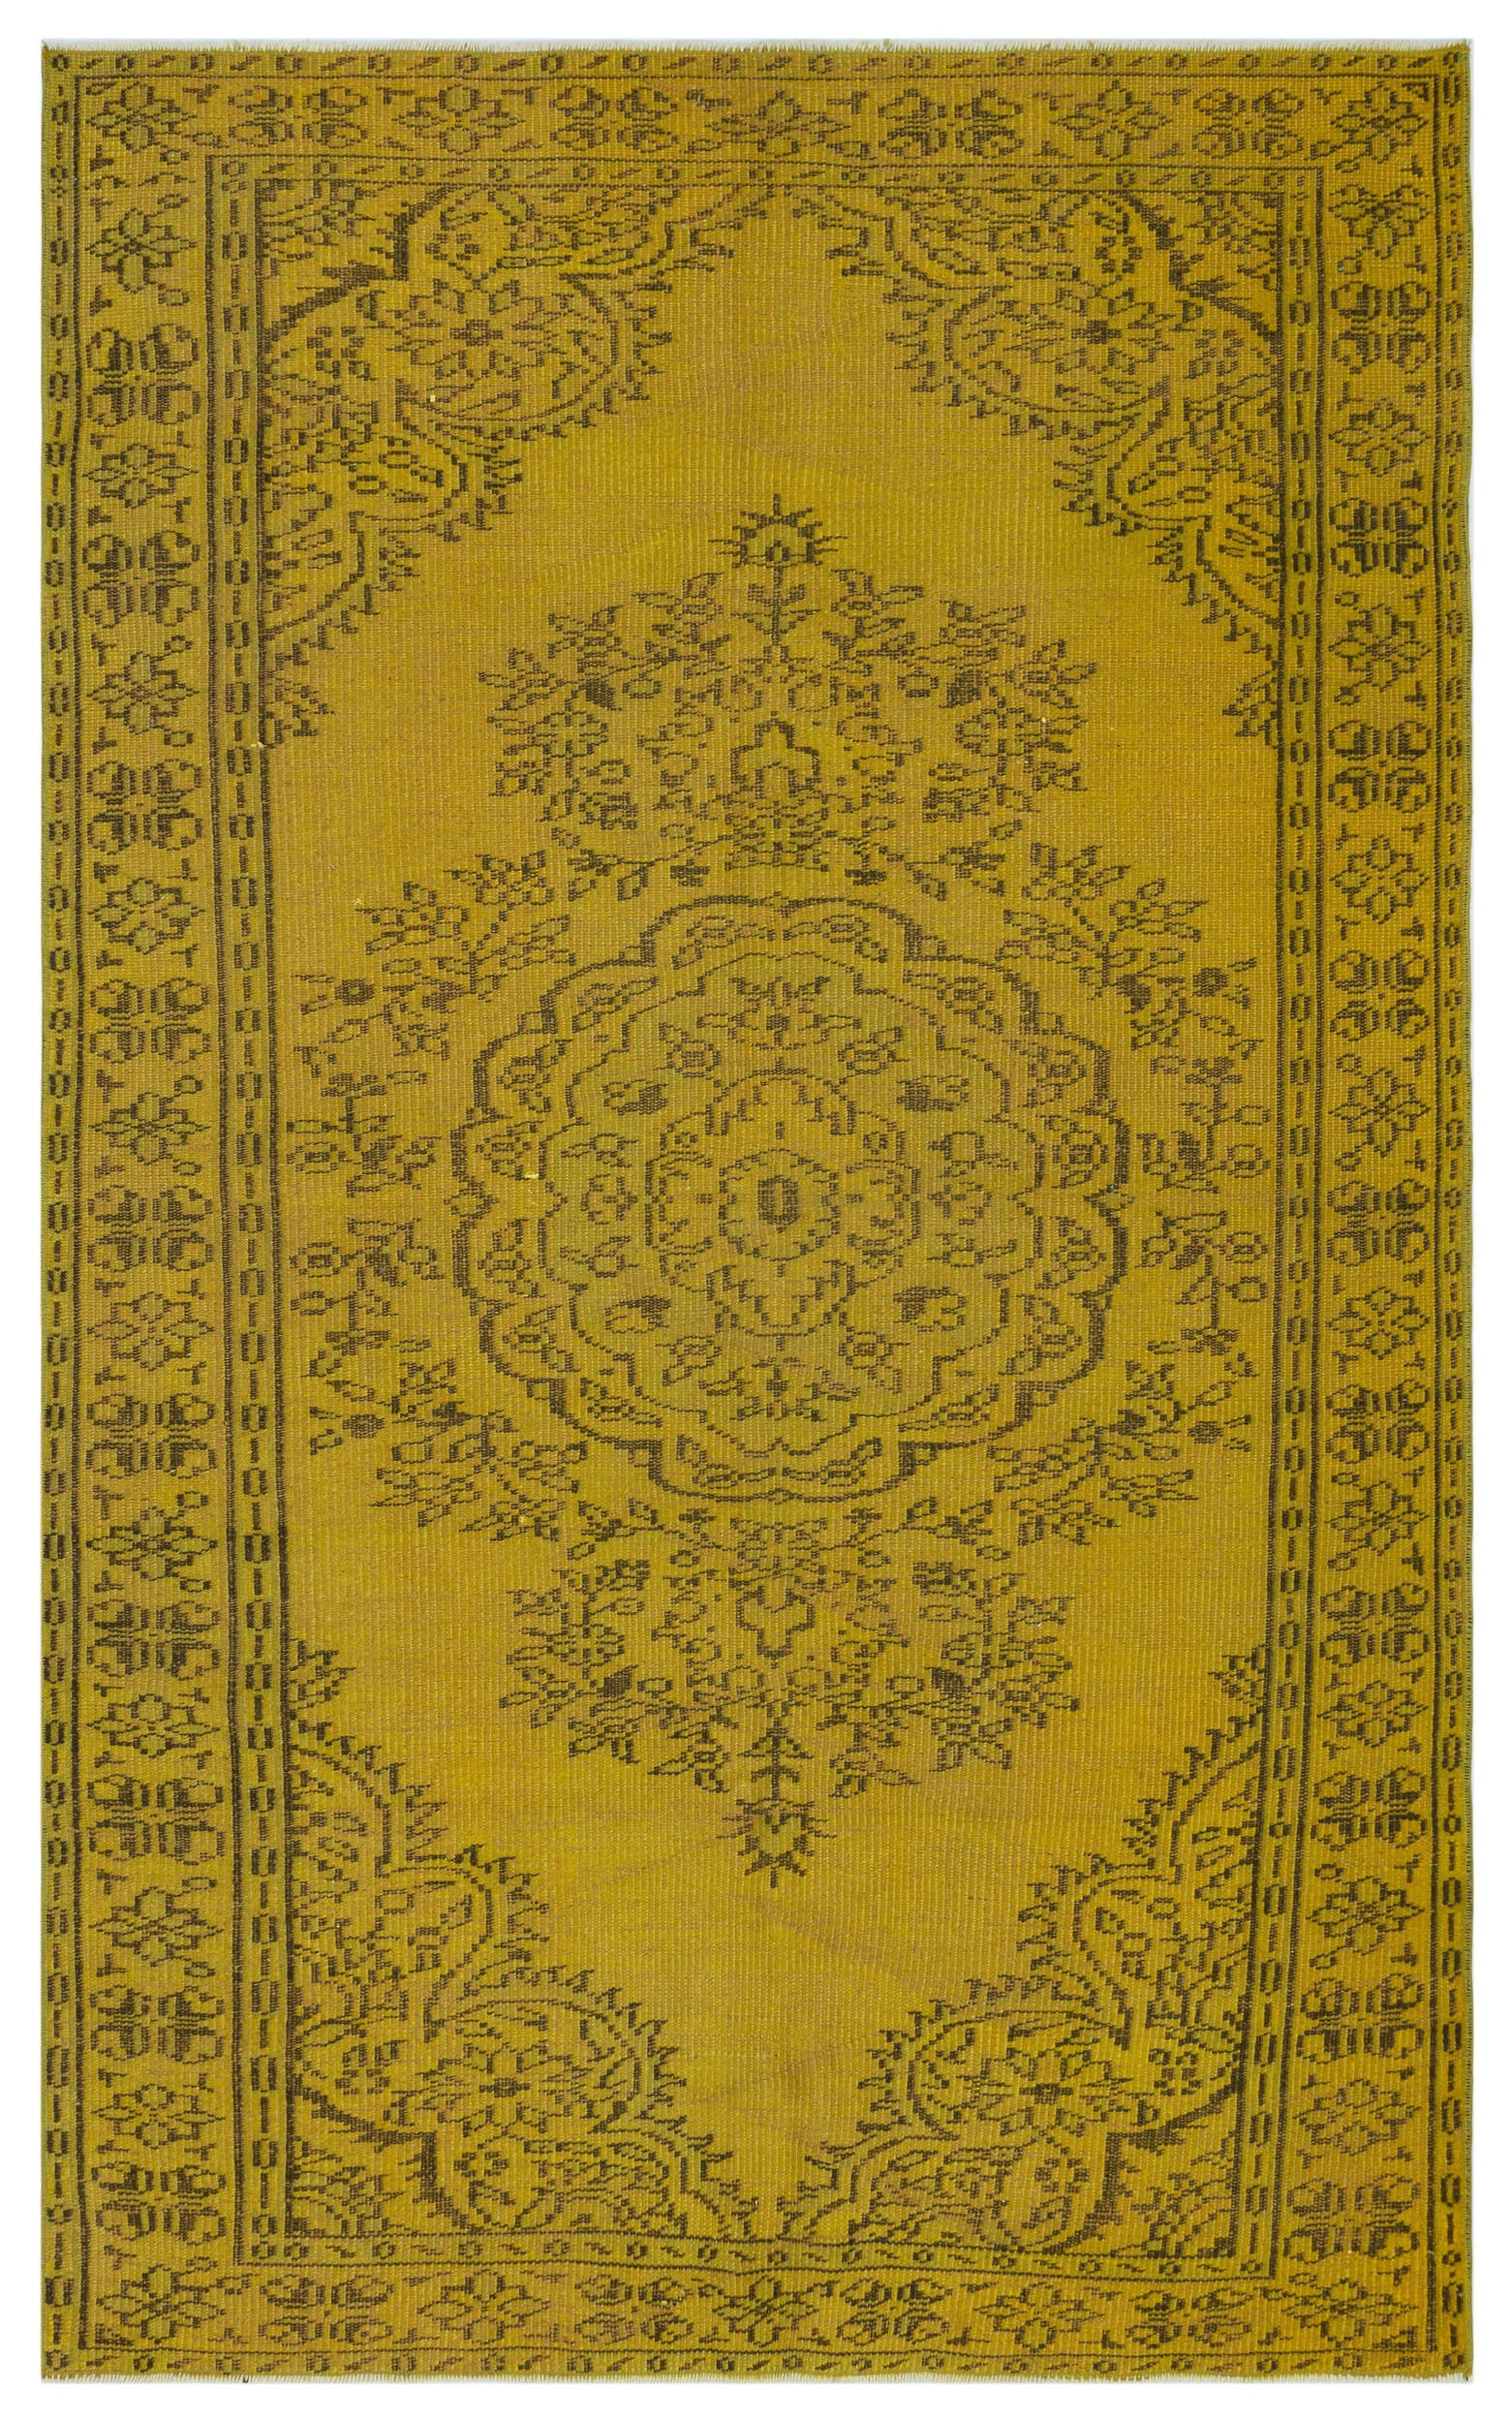 Yellow Over Dyed Vintage Rug 4'11'' x 7'11'' ft 150 x 241 cm